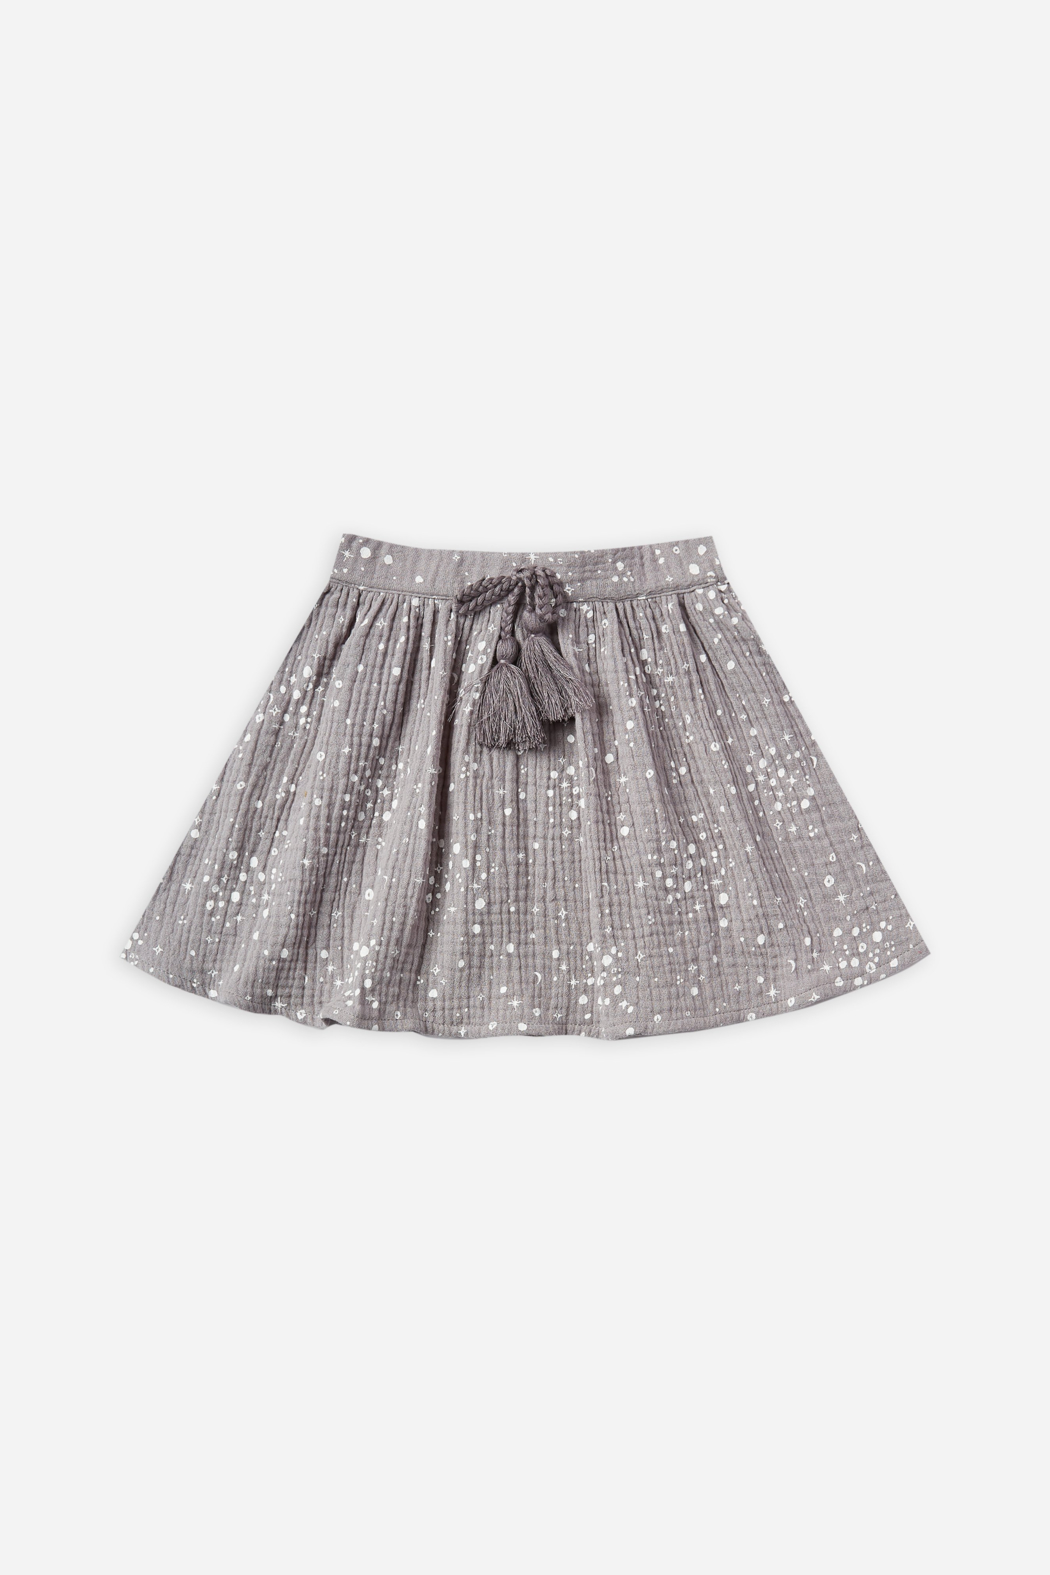 Rylee & Cru Moondust Mini Skirt - Main Image